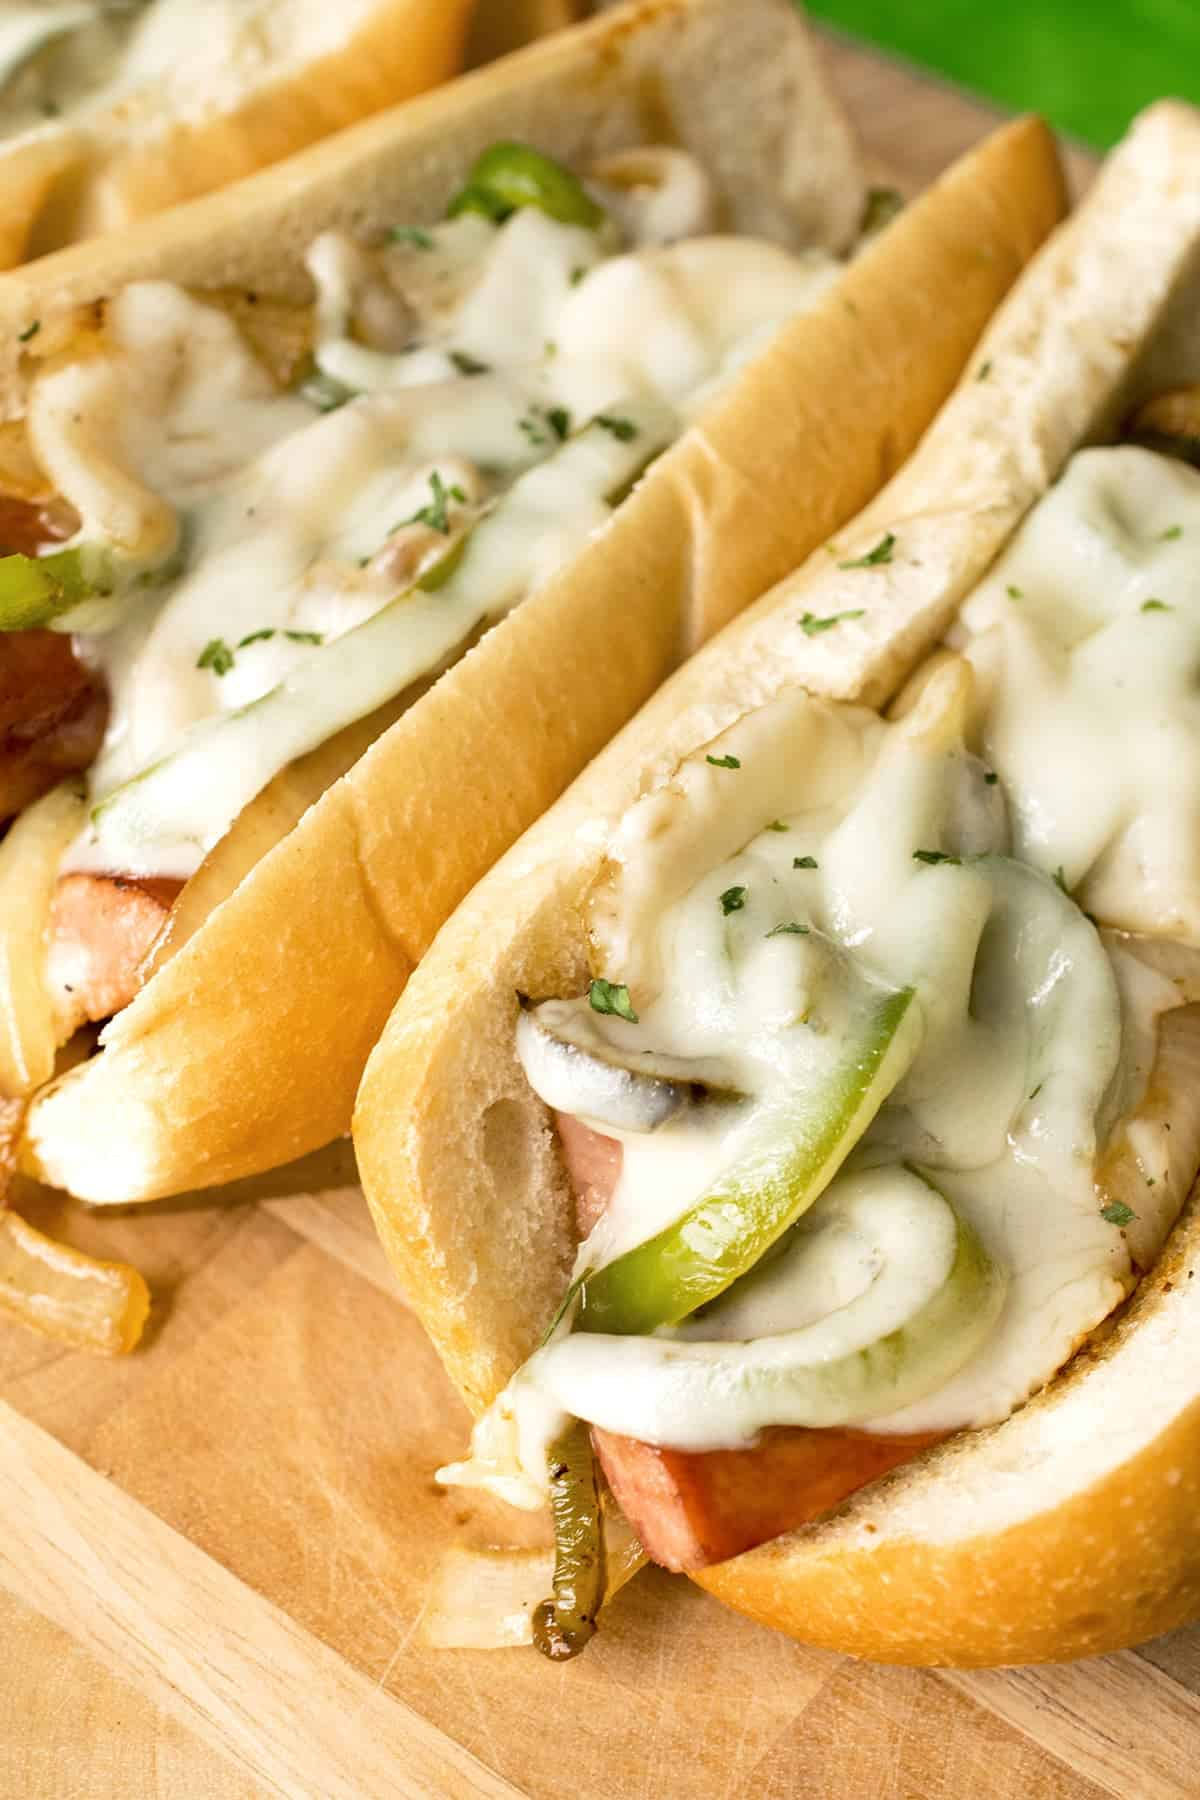 Kielbasa sandwiches with peppers, onions, and melted provolone on wooden surface.